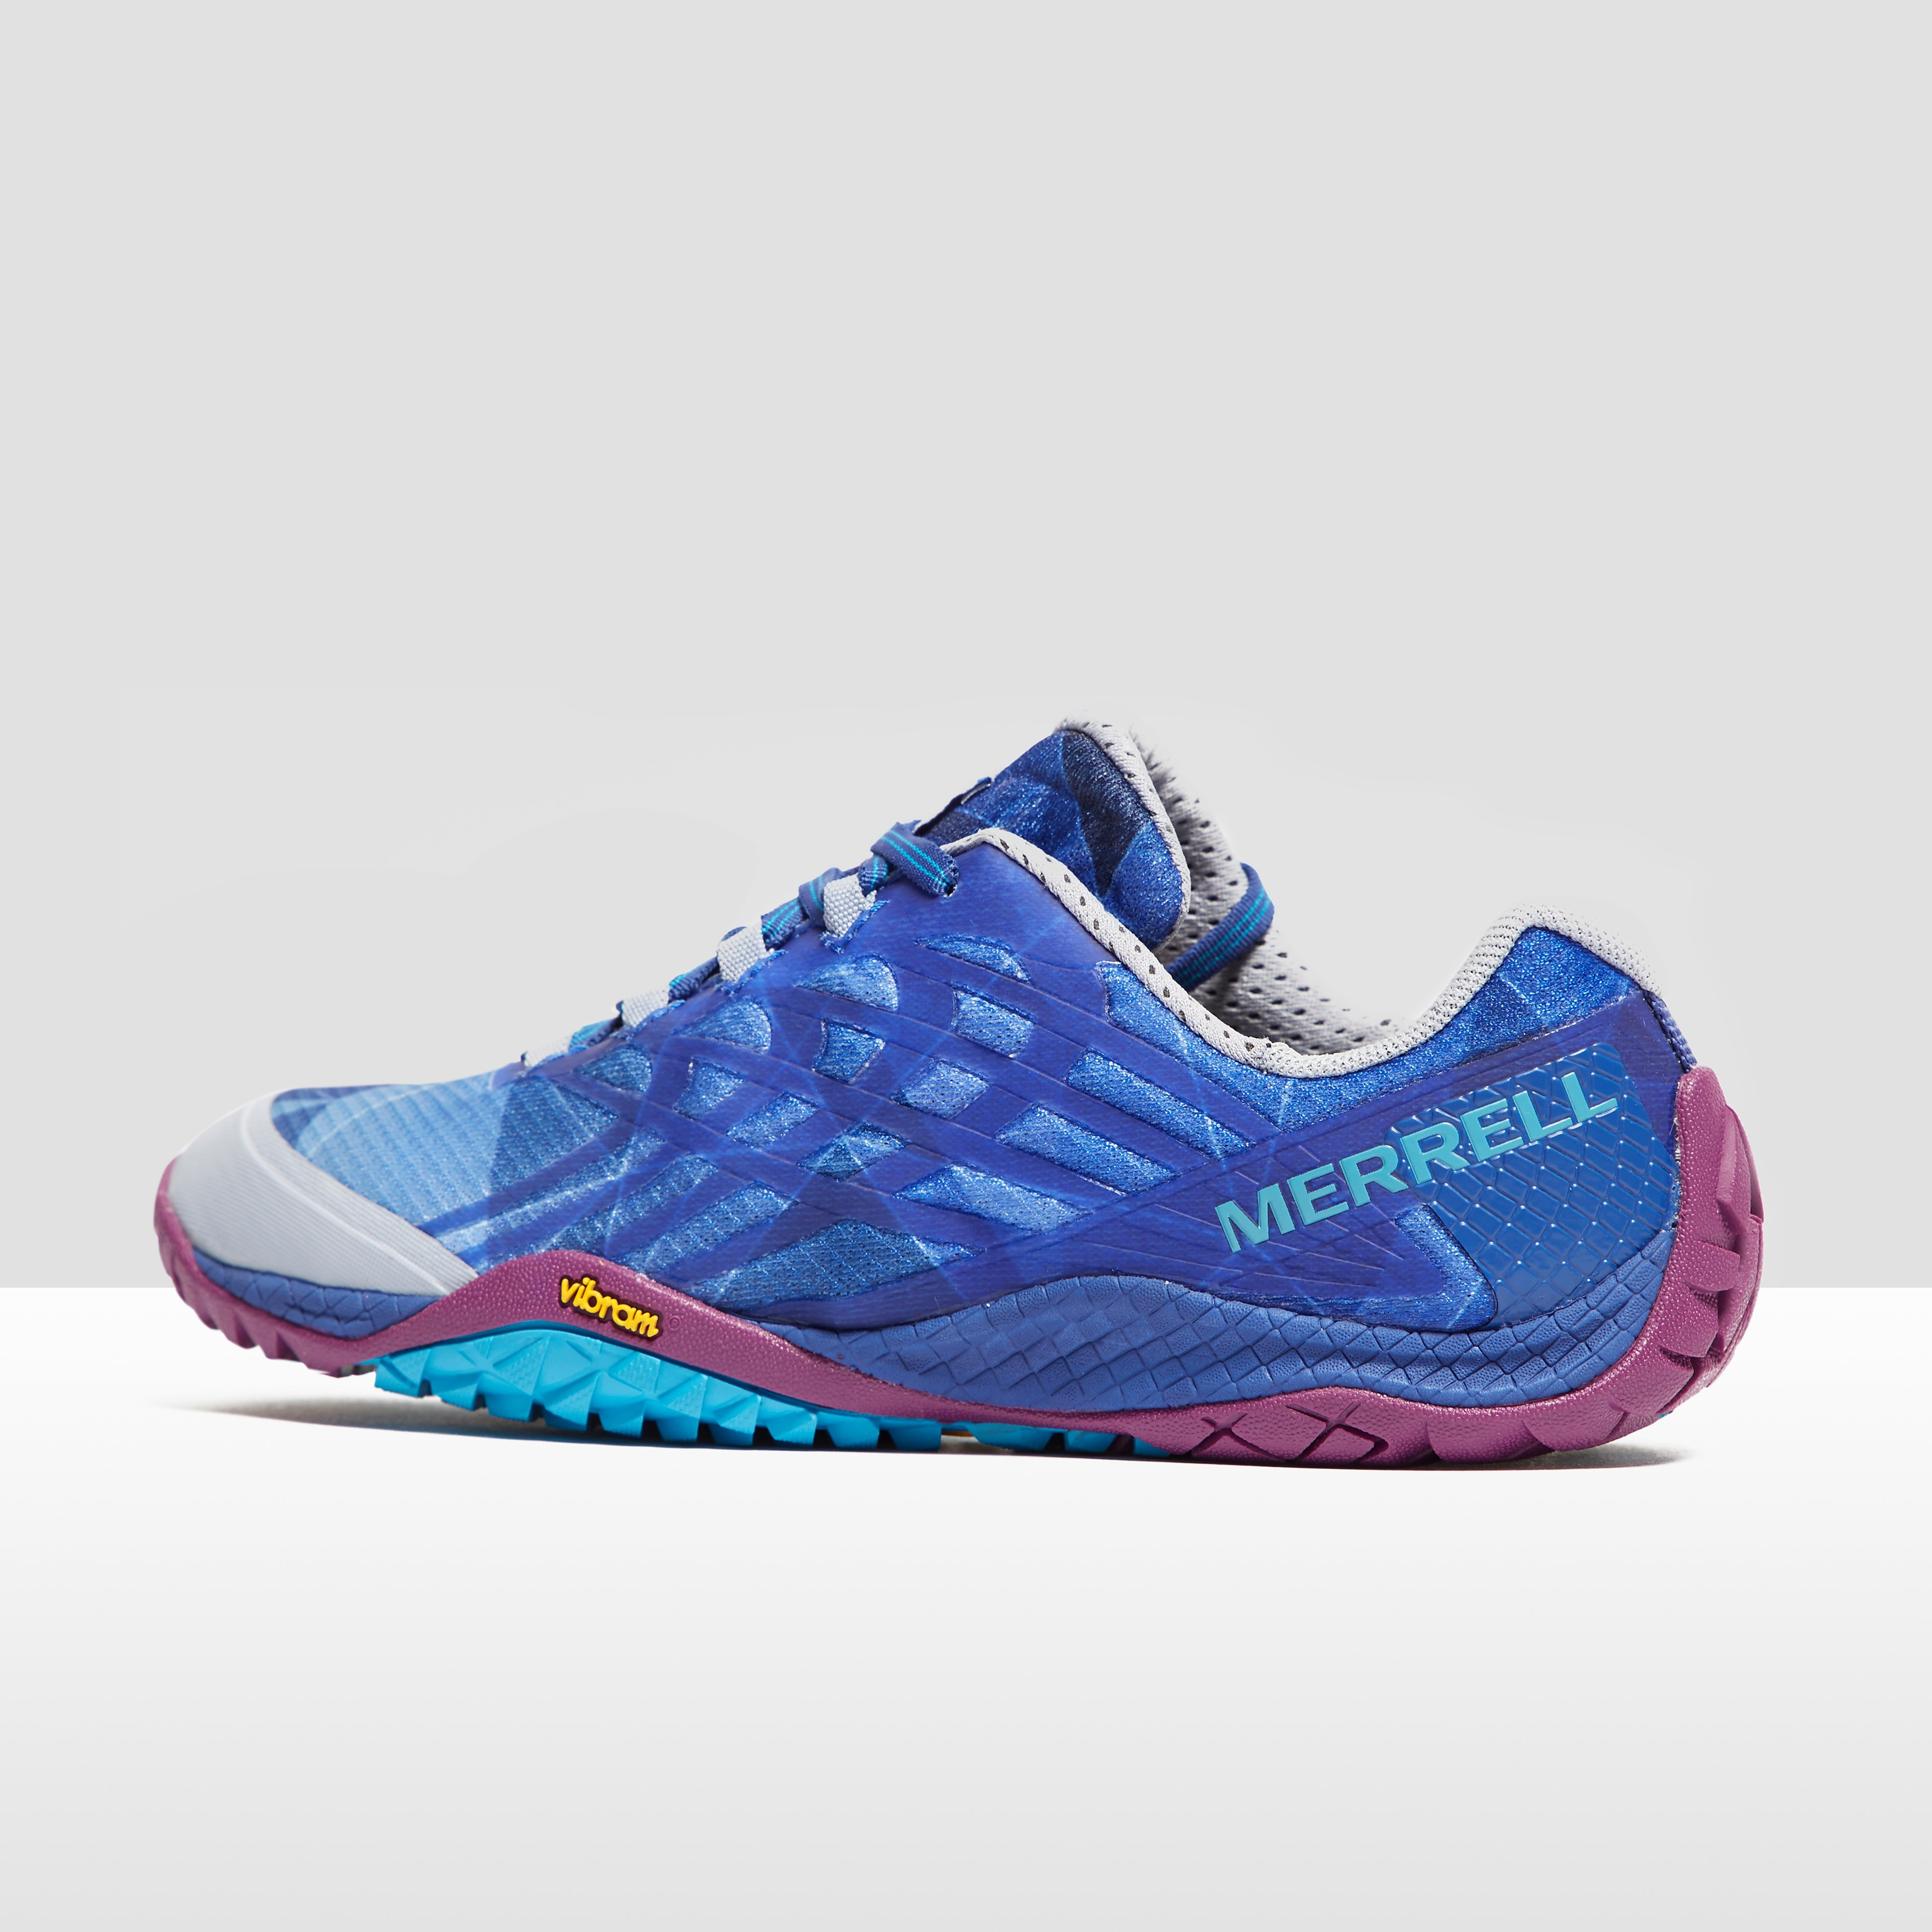 Merrell Trail Glove 4 Women's Trial Running Shoes